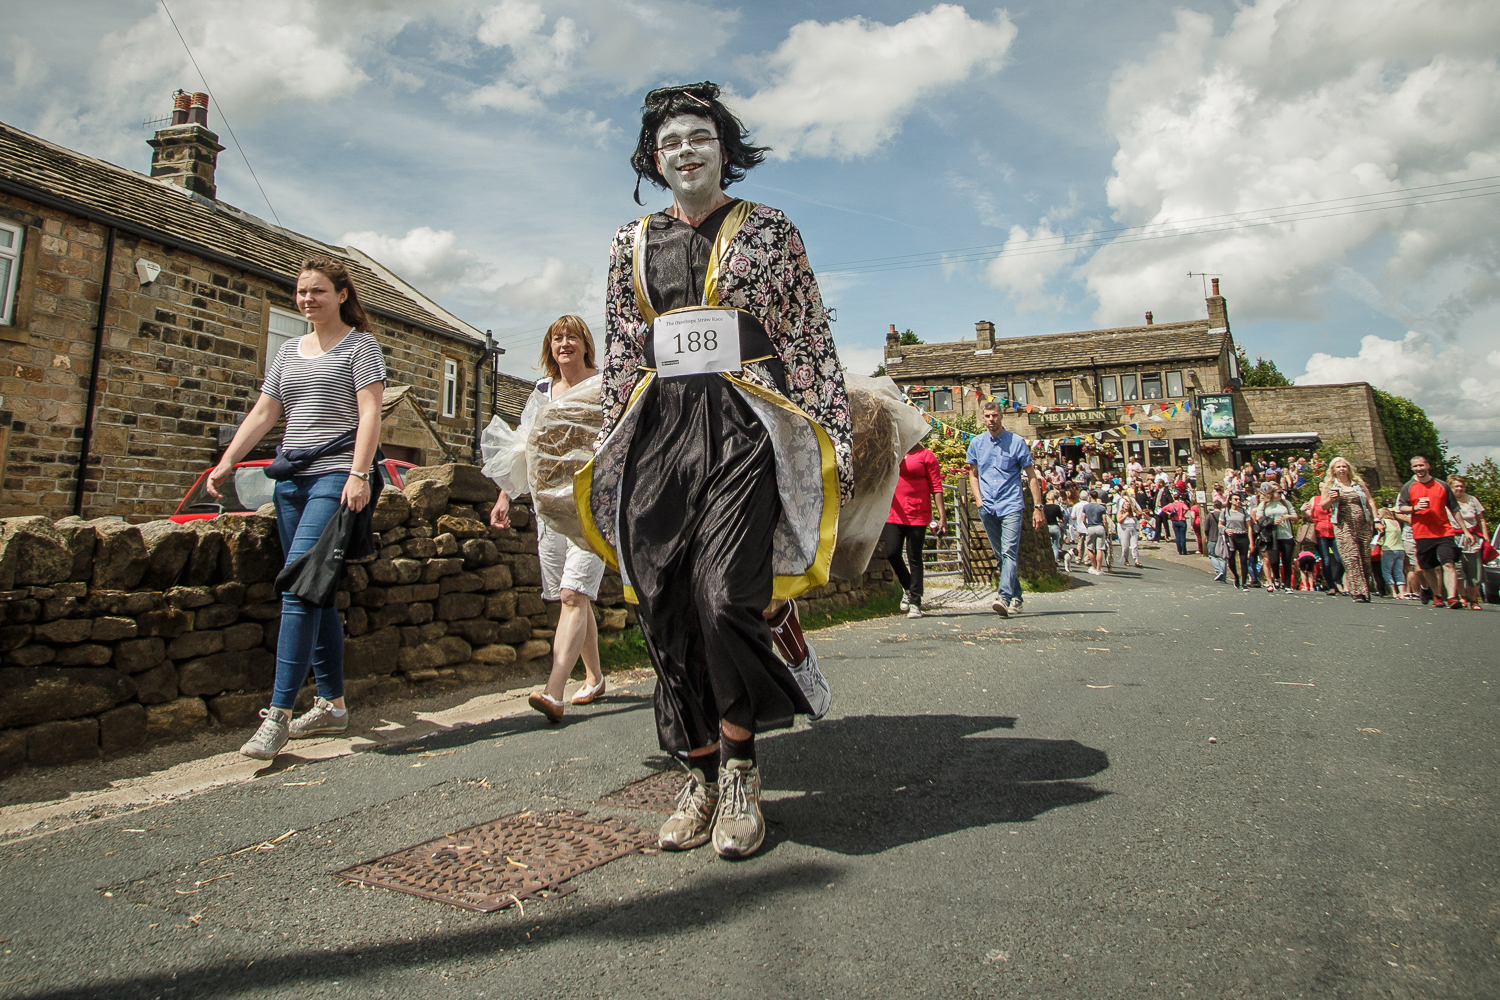 Oxenhope Straw Race 2015